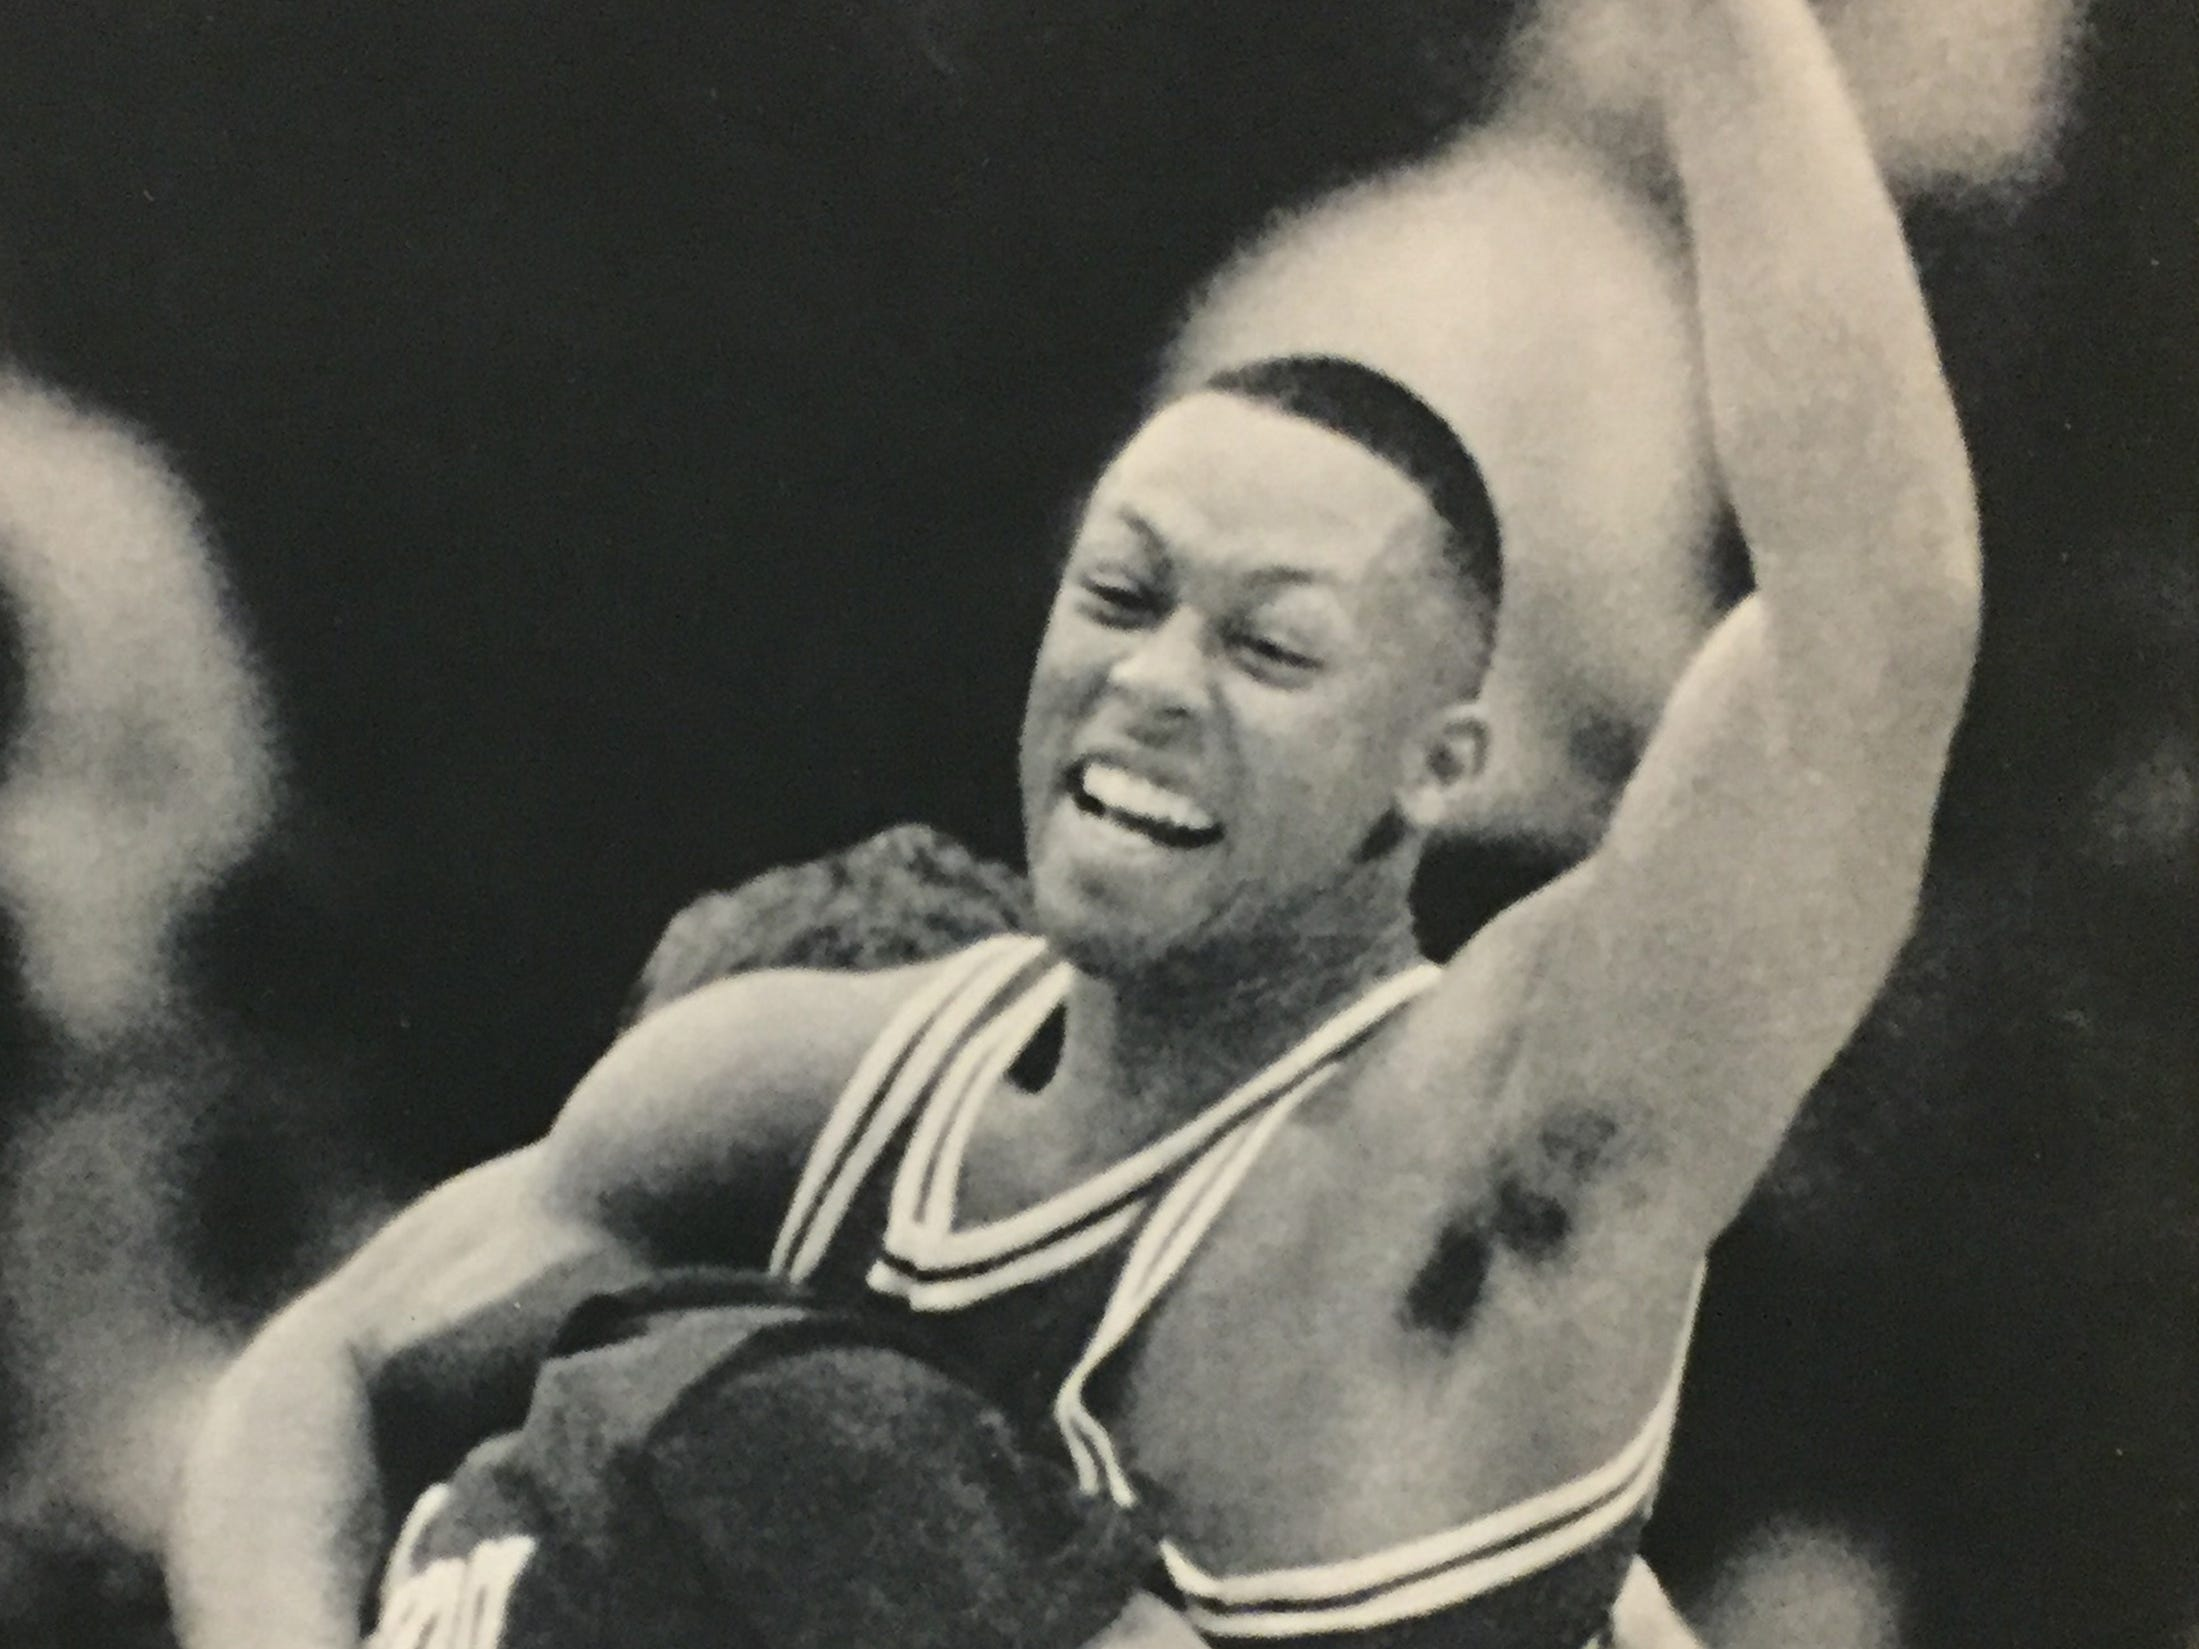 Jamaal Meeks gets a victory hug while celebrating IU's 71-70 win over Michigan at Crisler Arena, Jan. 23, 1989.